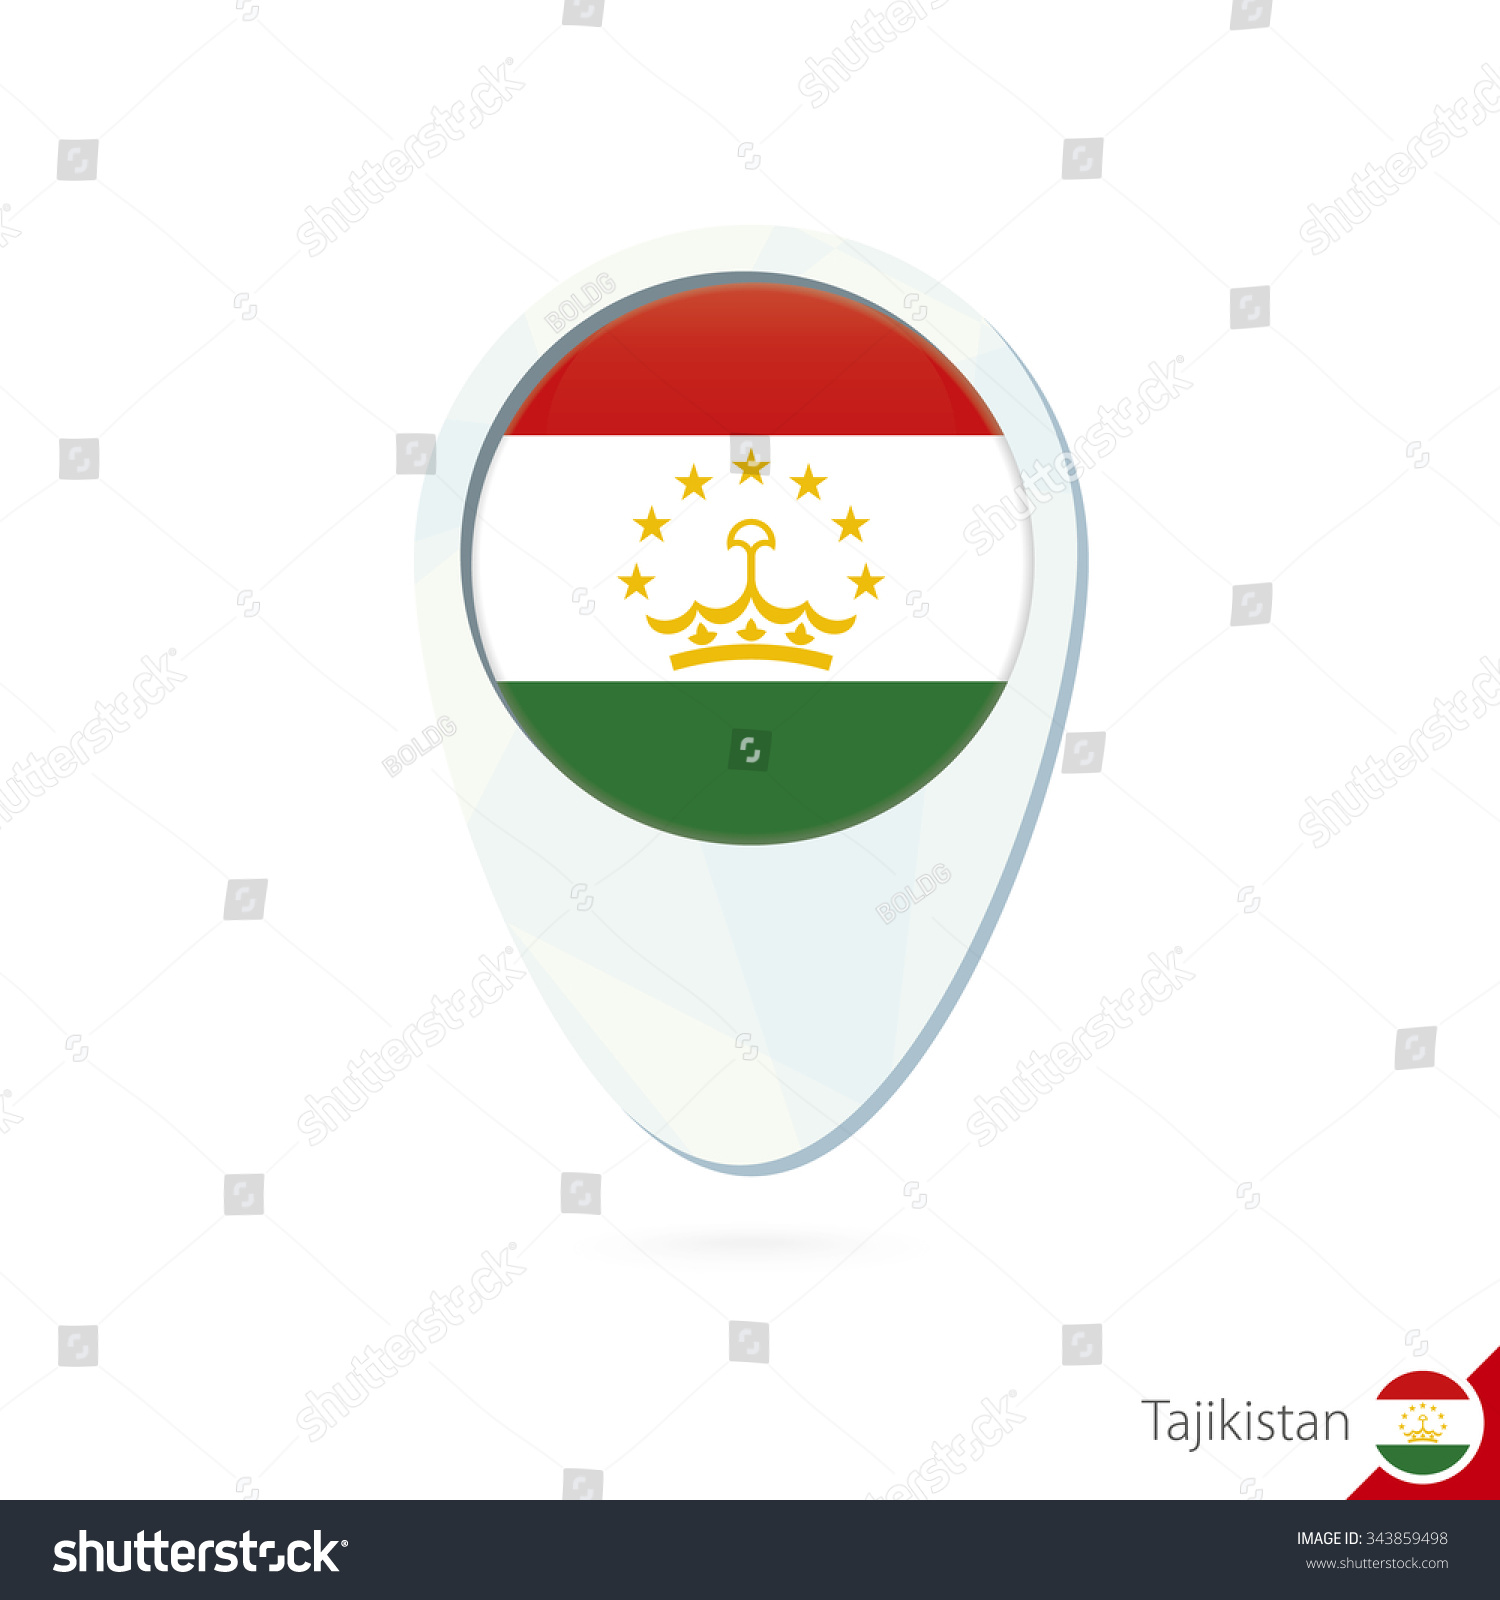 Tajikistan Flag Location Map Pin Icon Stock Photo Photo Vector